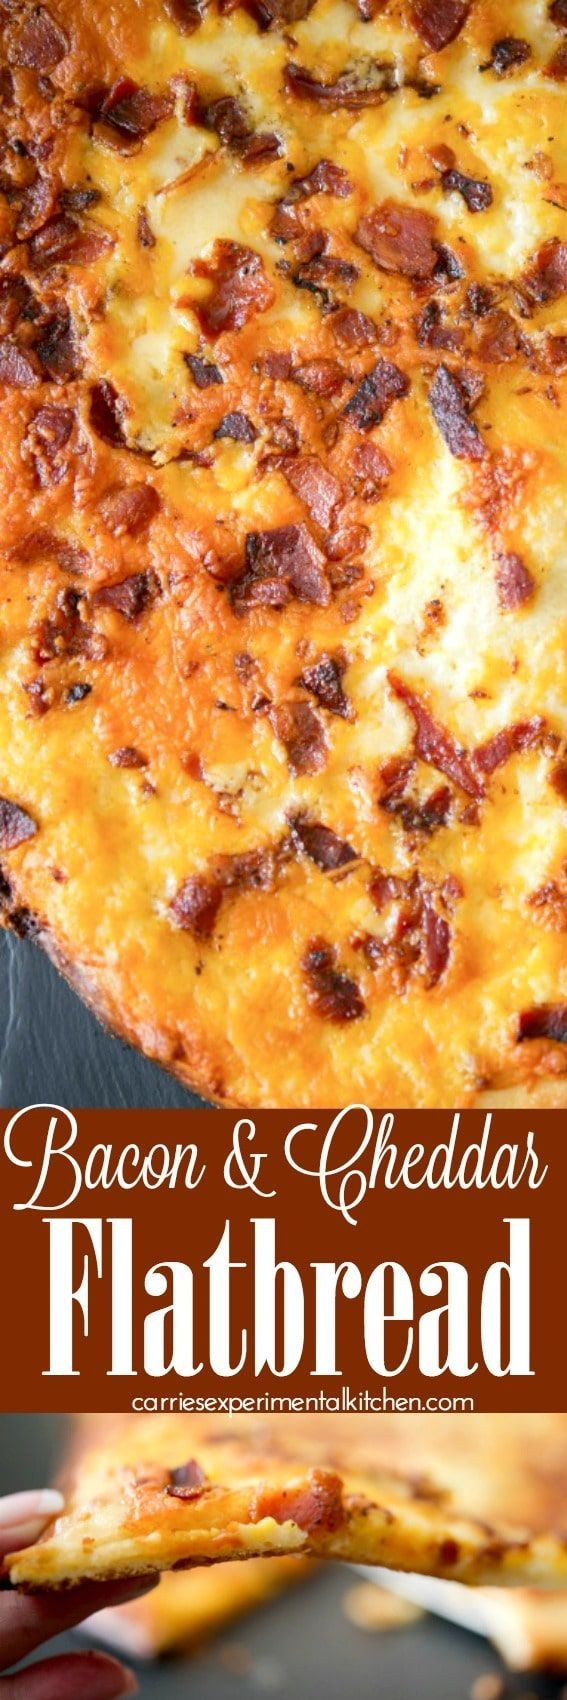 Bacon & Cheddar Flat Bread -- made with your favorite pizza dough, crispy crumbled bacon and shredded sharp Cheddar cheese w/creamy horseradish sauce.